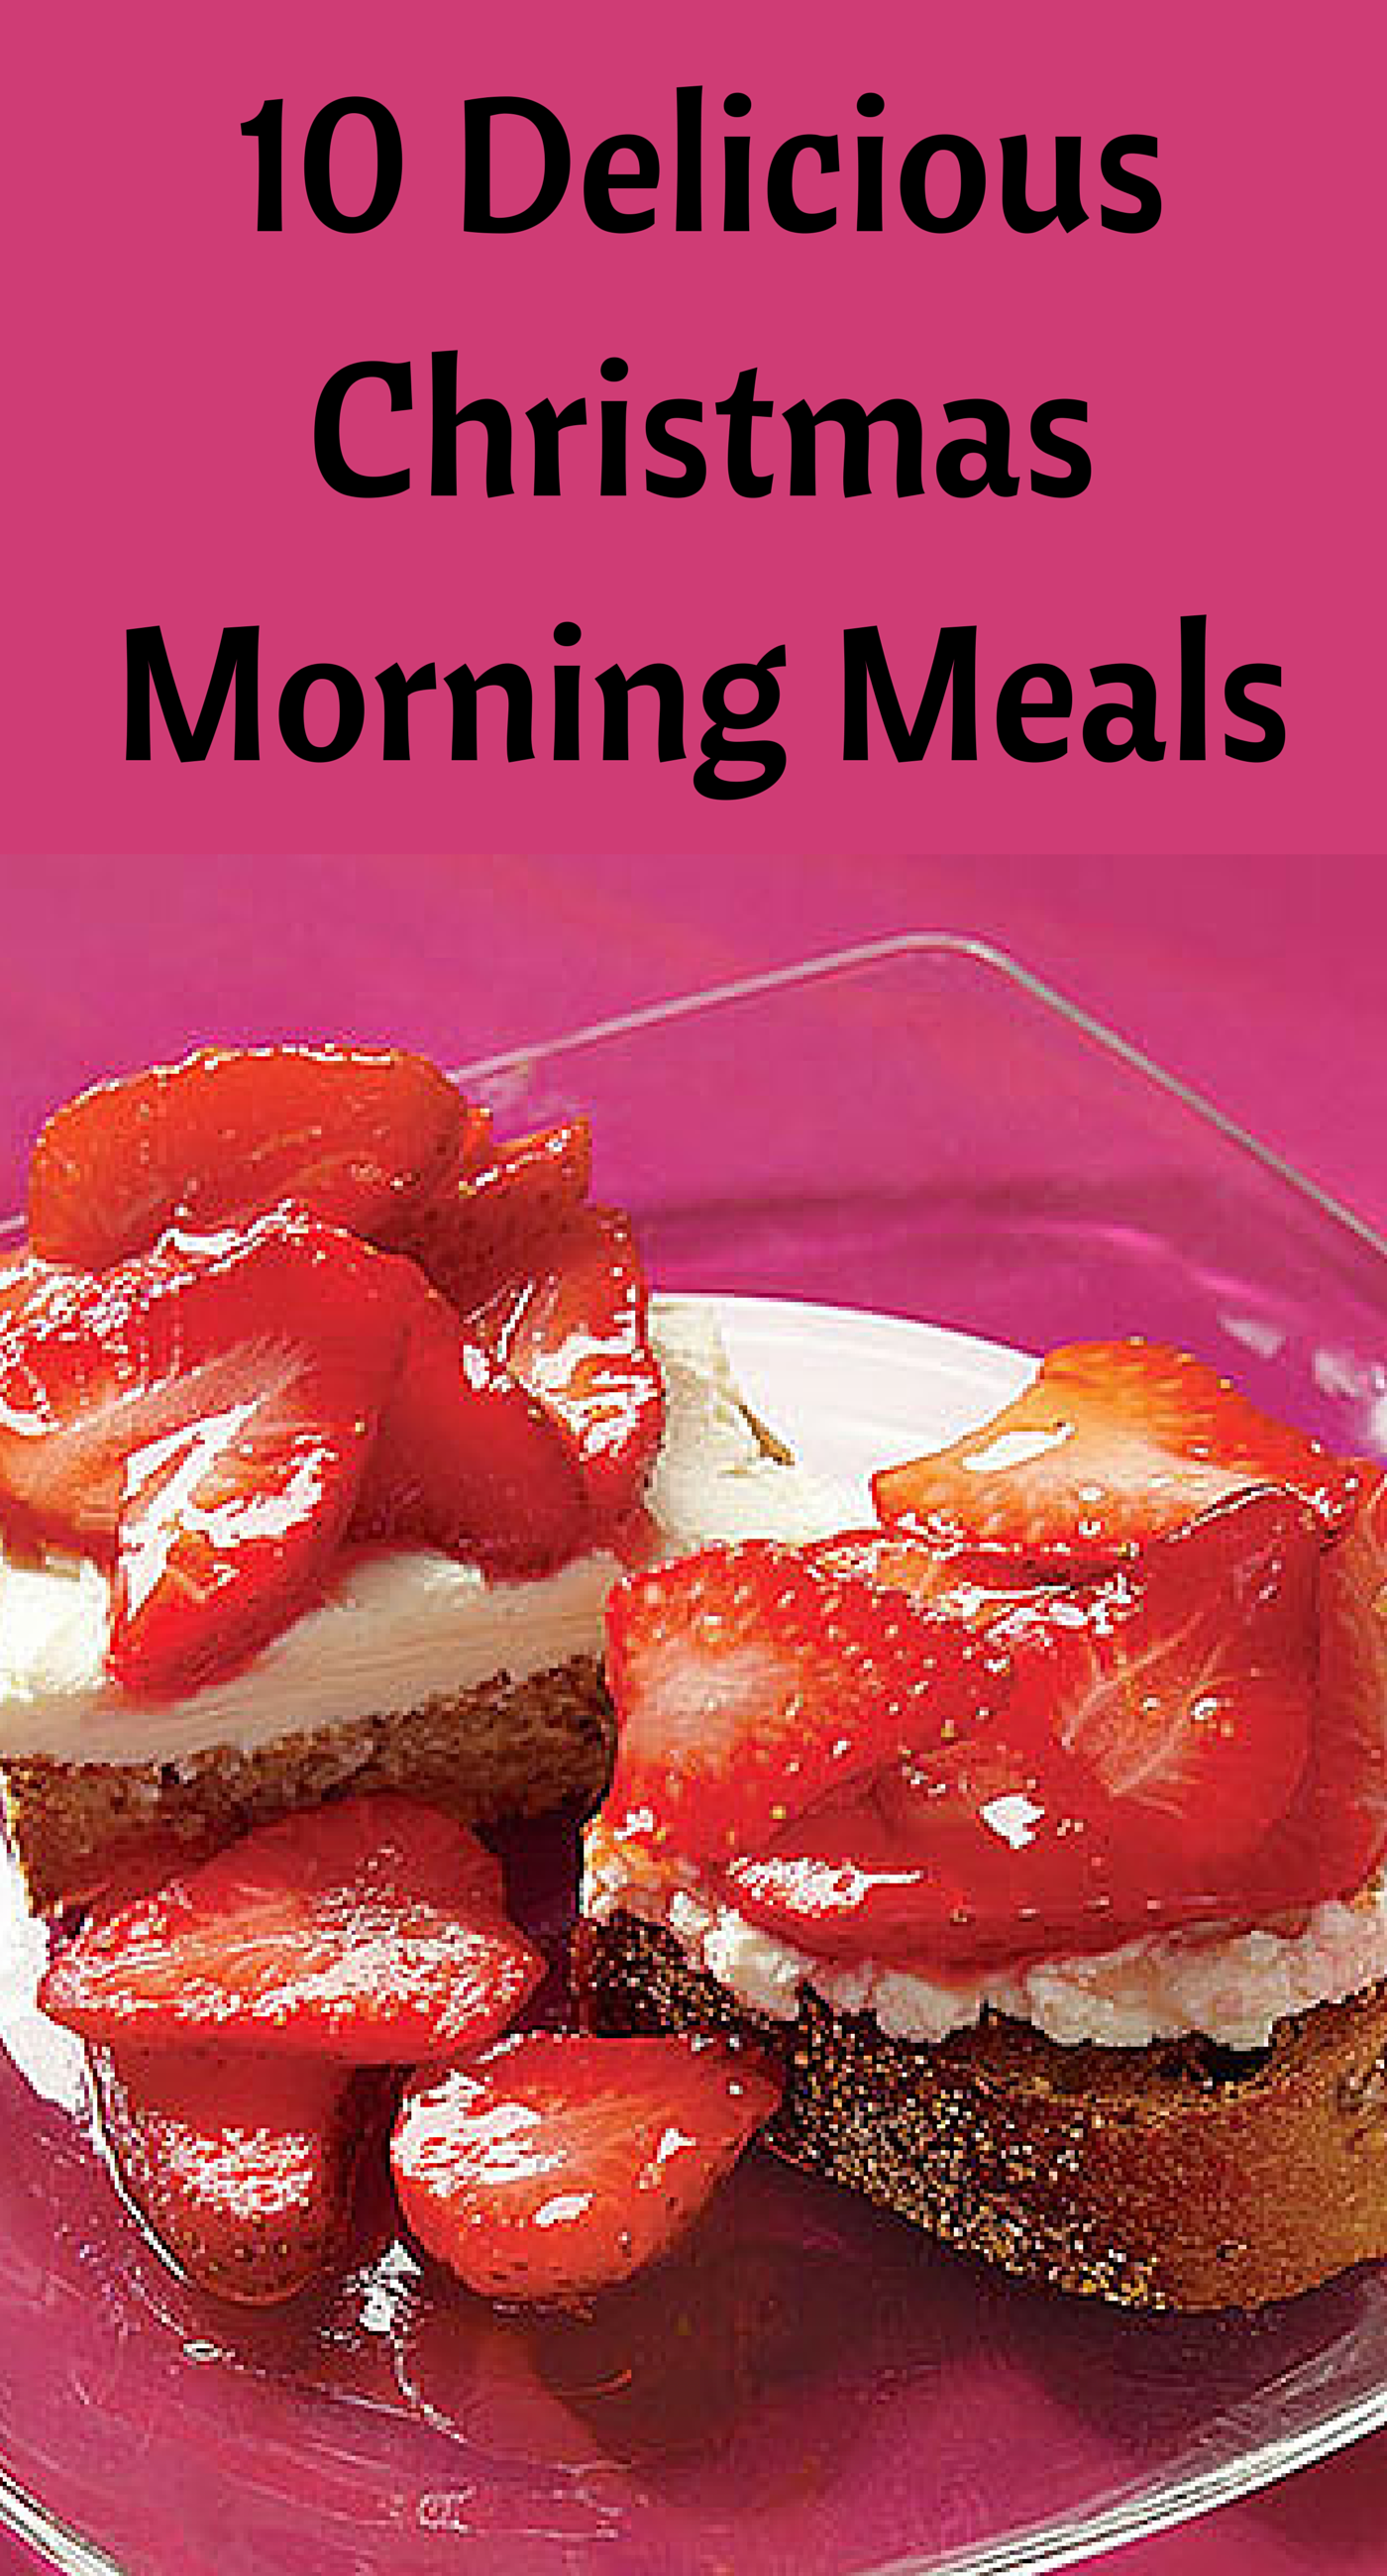 10 Delicious Christmas Morning Meals: Strawberry Bruschetta